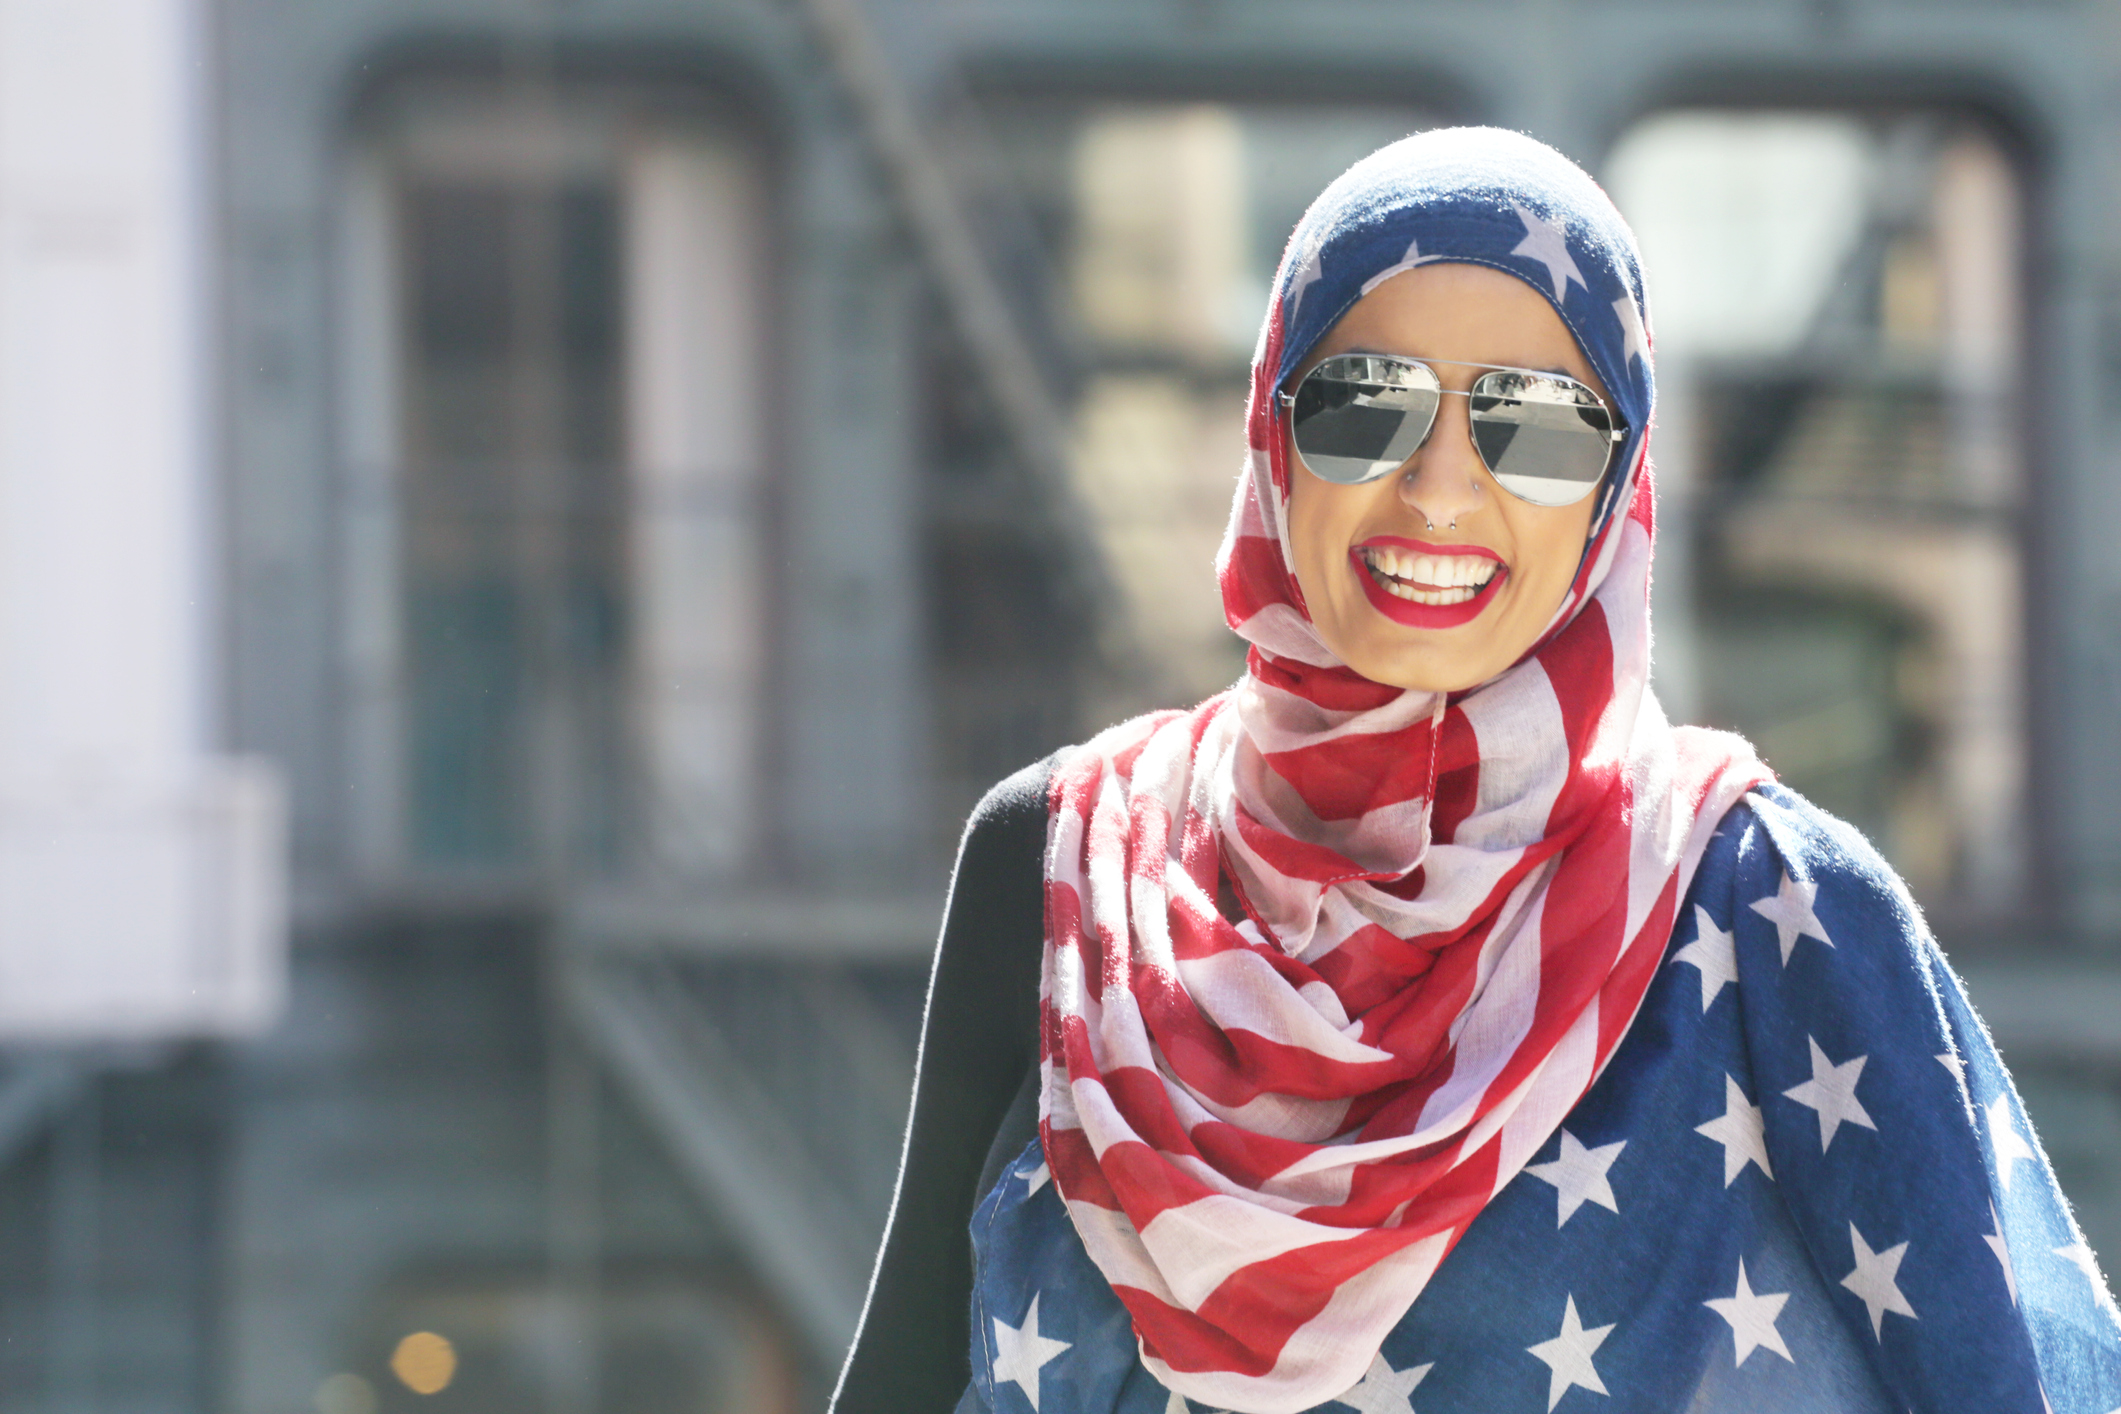 The Pew Research Center has reported on Muslims in the US in the two decades following 9/11